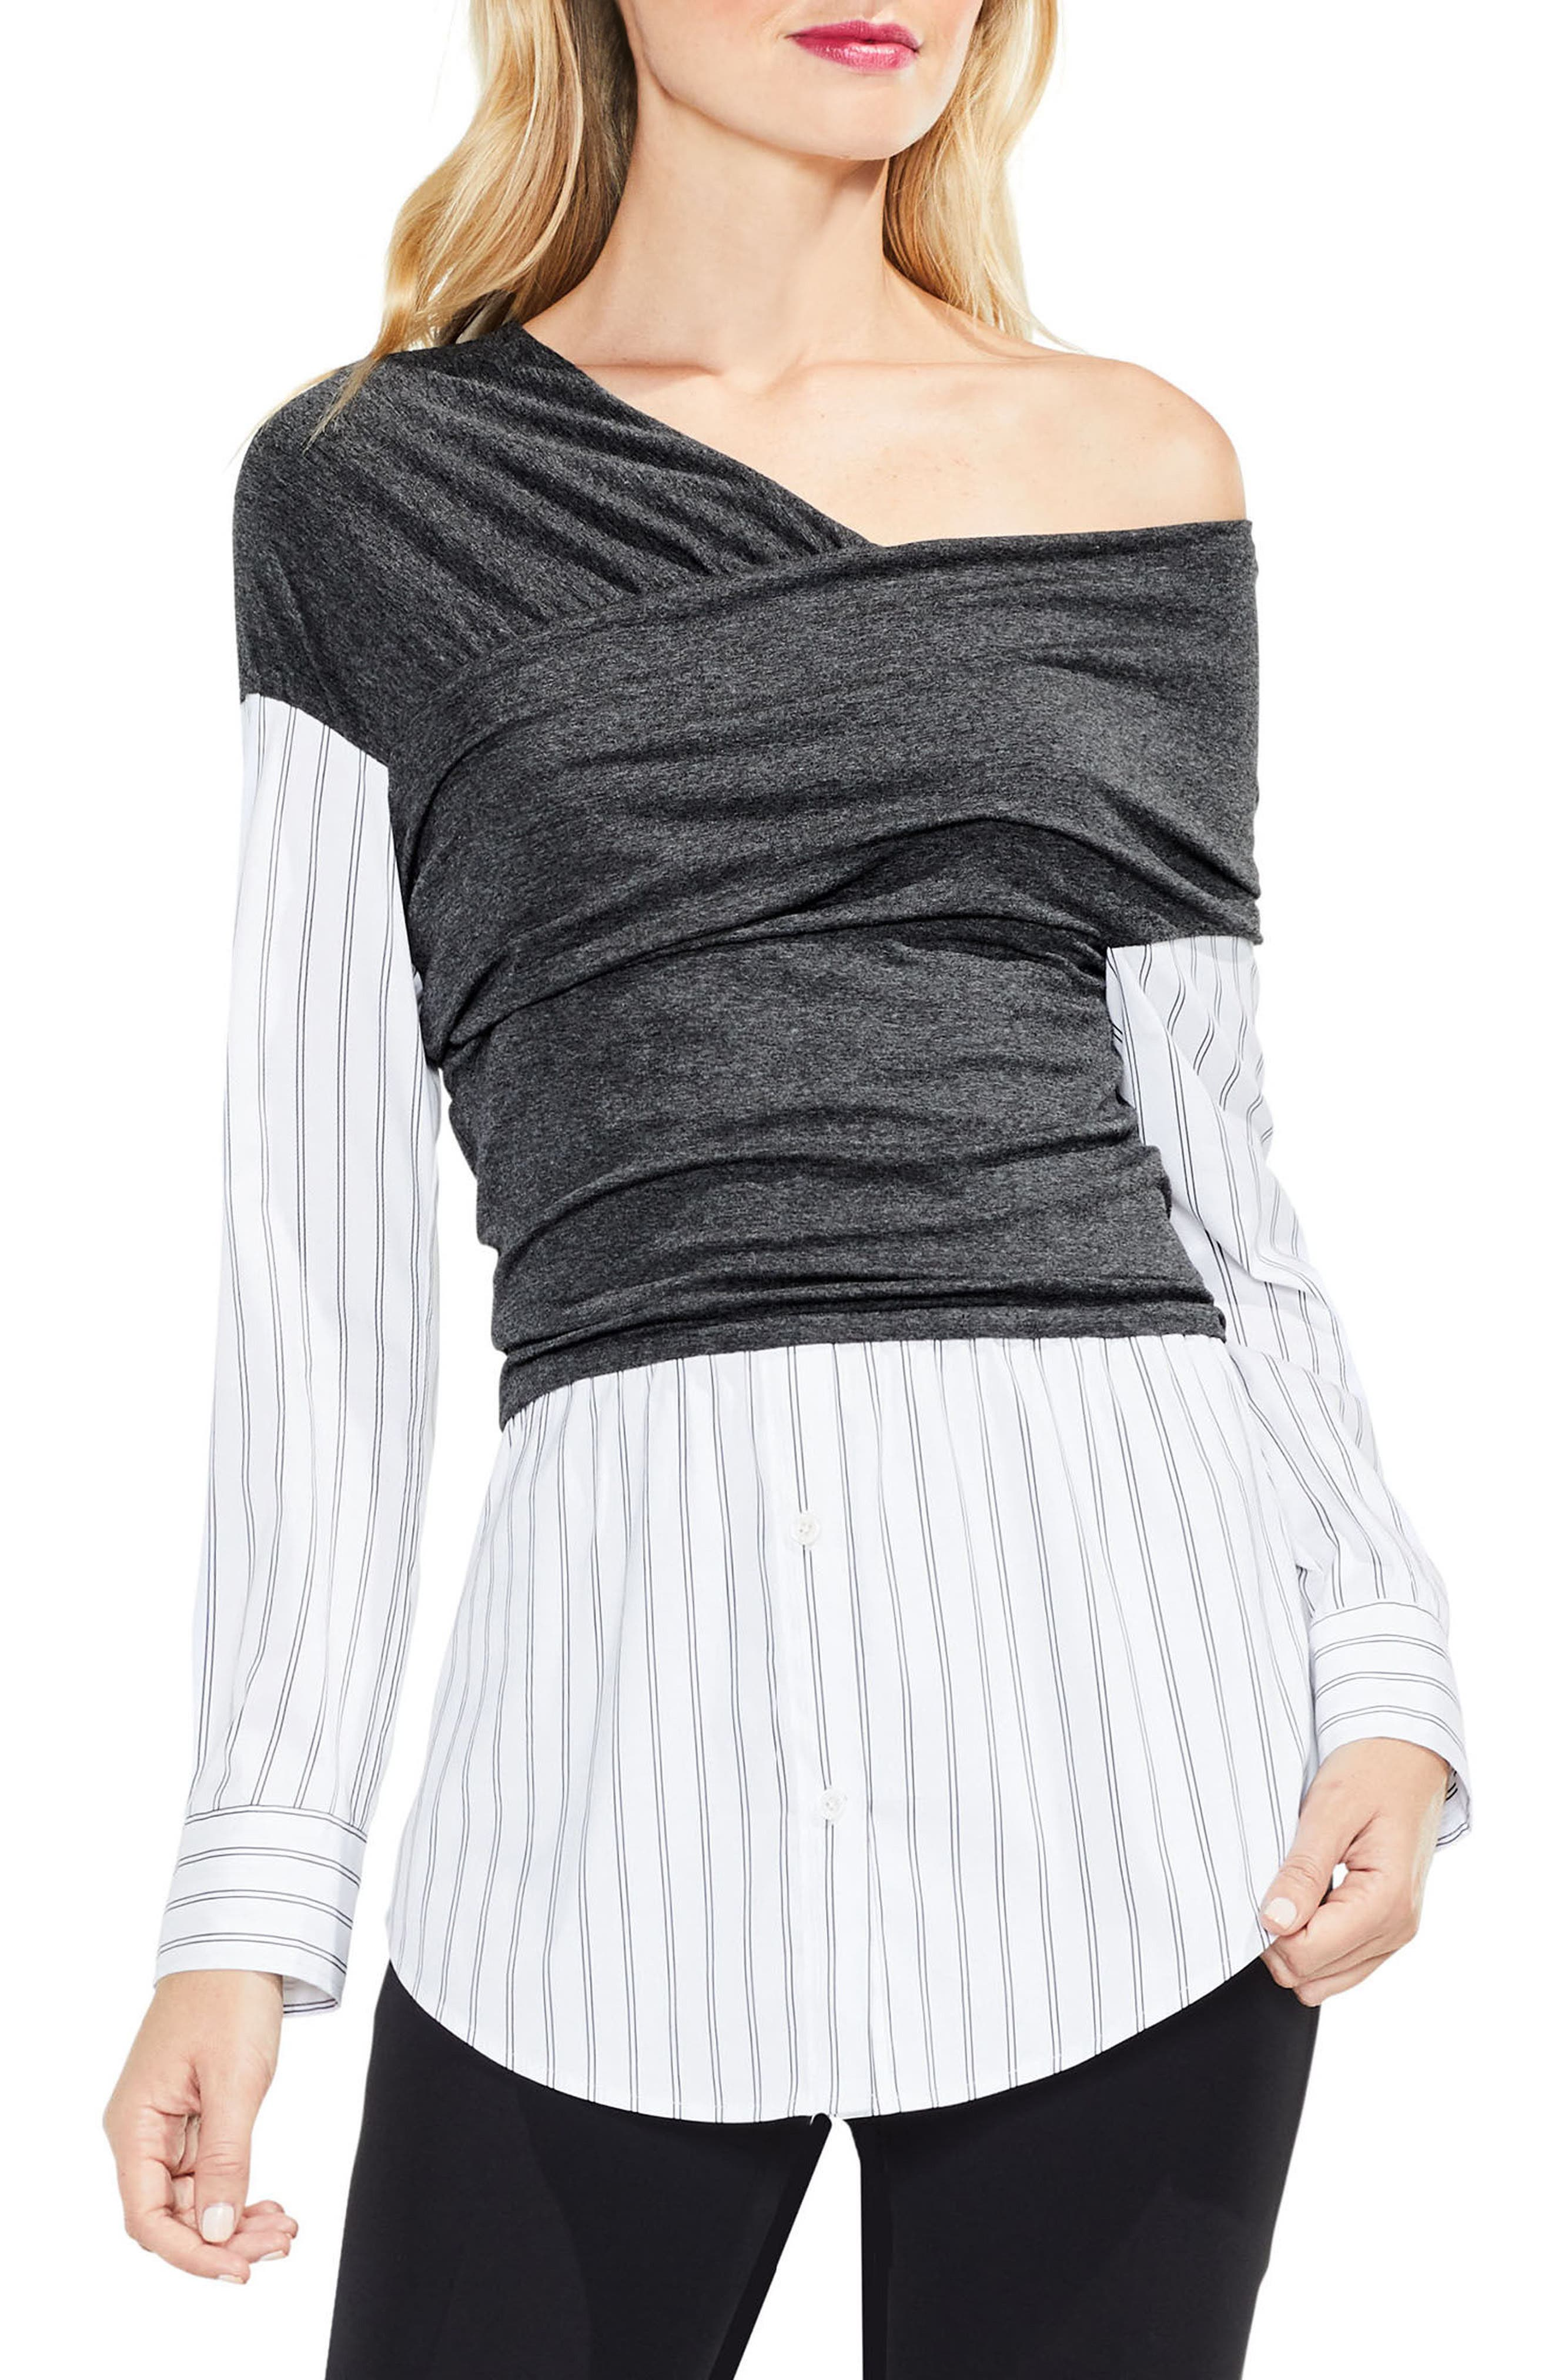 Alternate Image 1 Selected - Vince Camuto One-Shoulder Layered Look Top